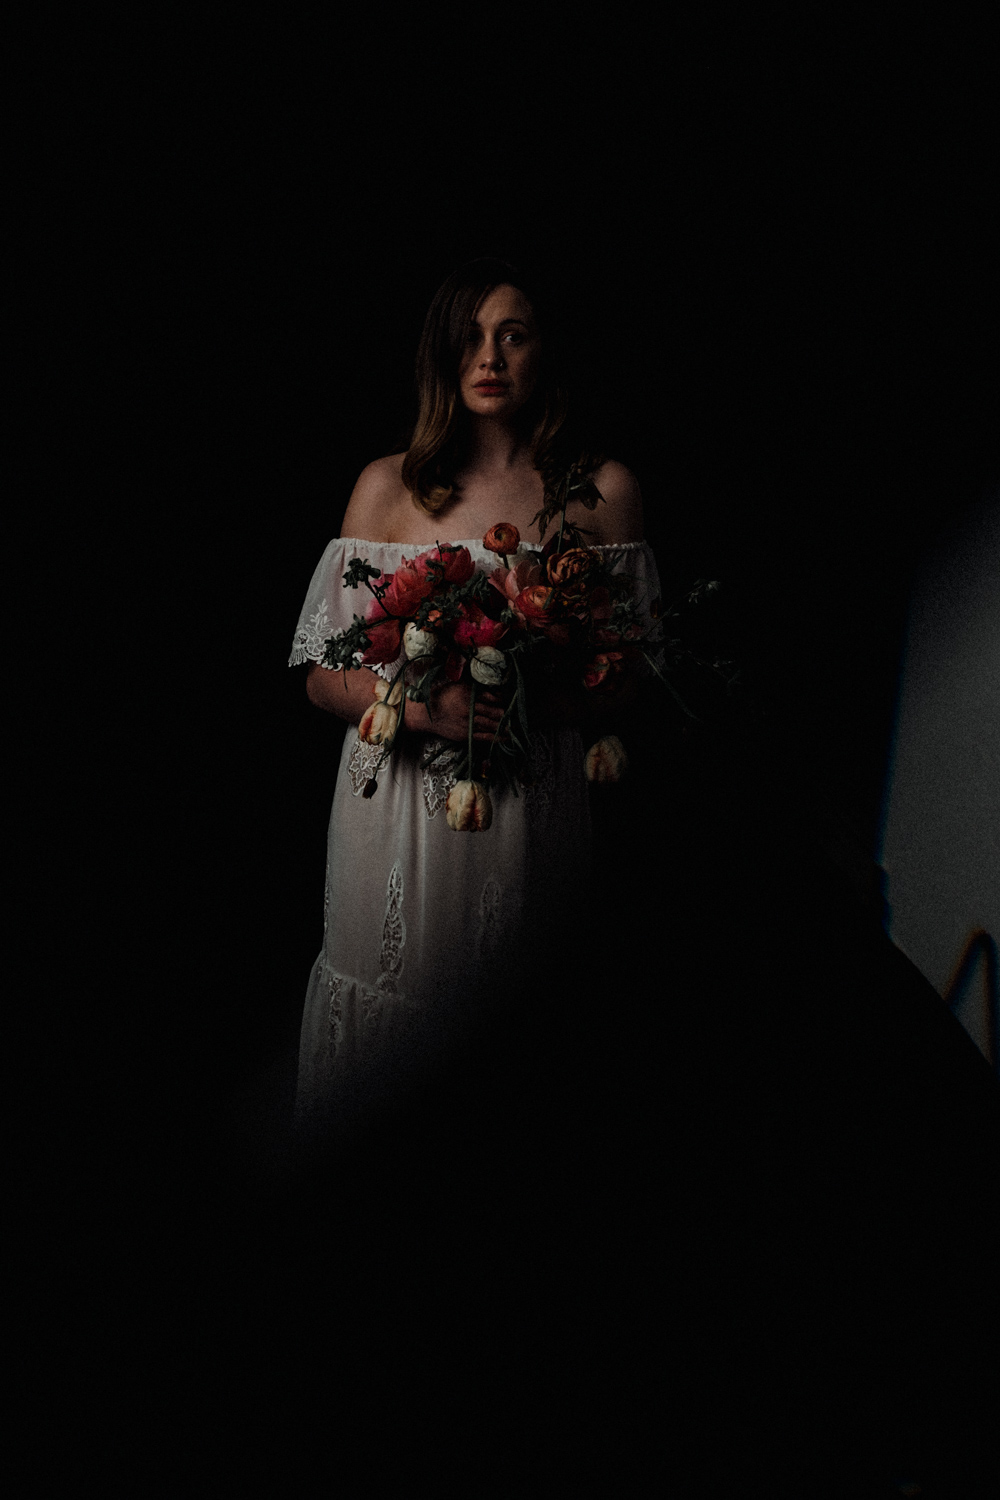 Alicia is stood in the shadows with her wedding bouquet